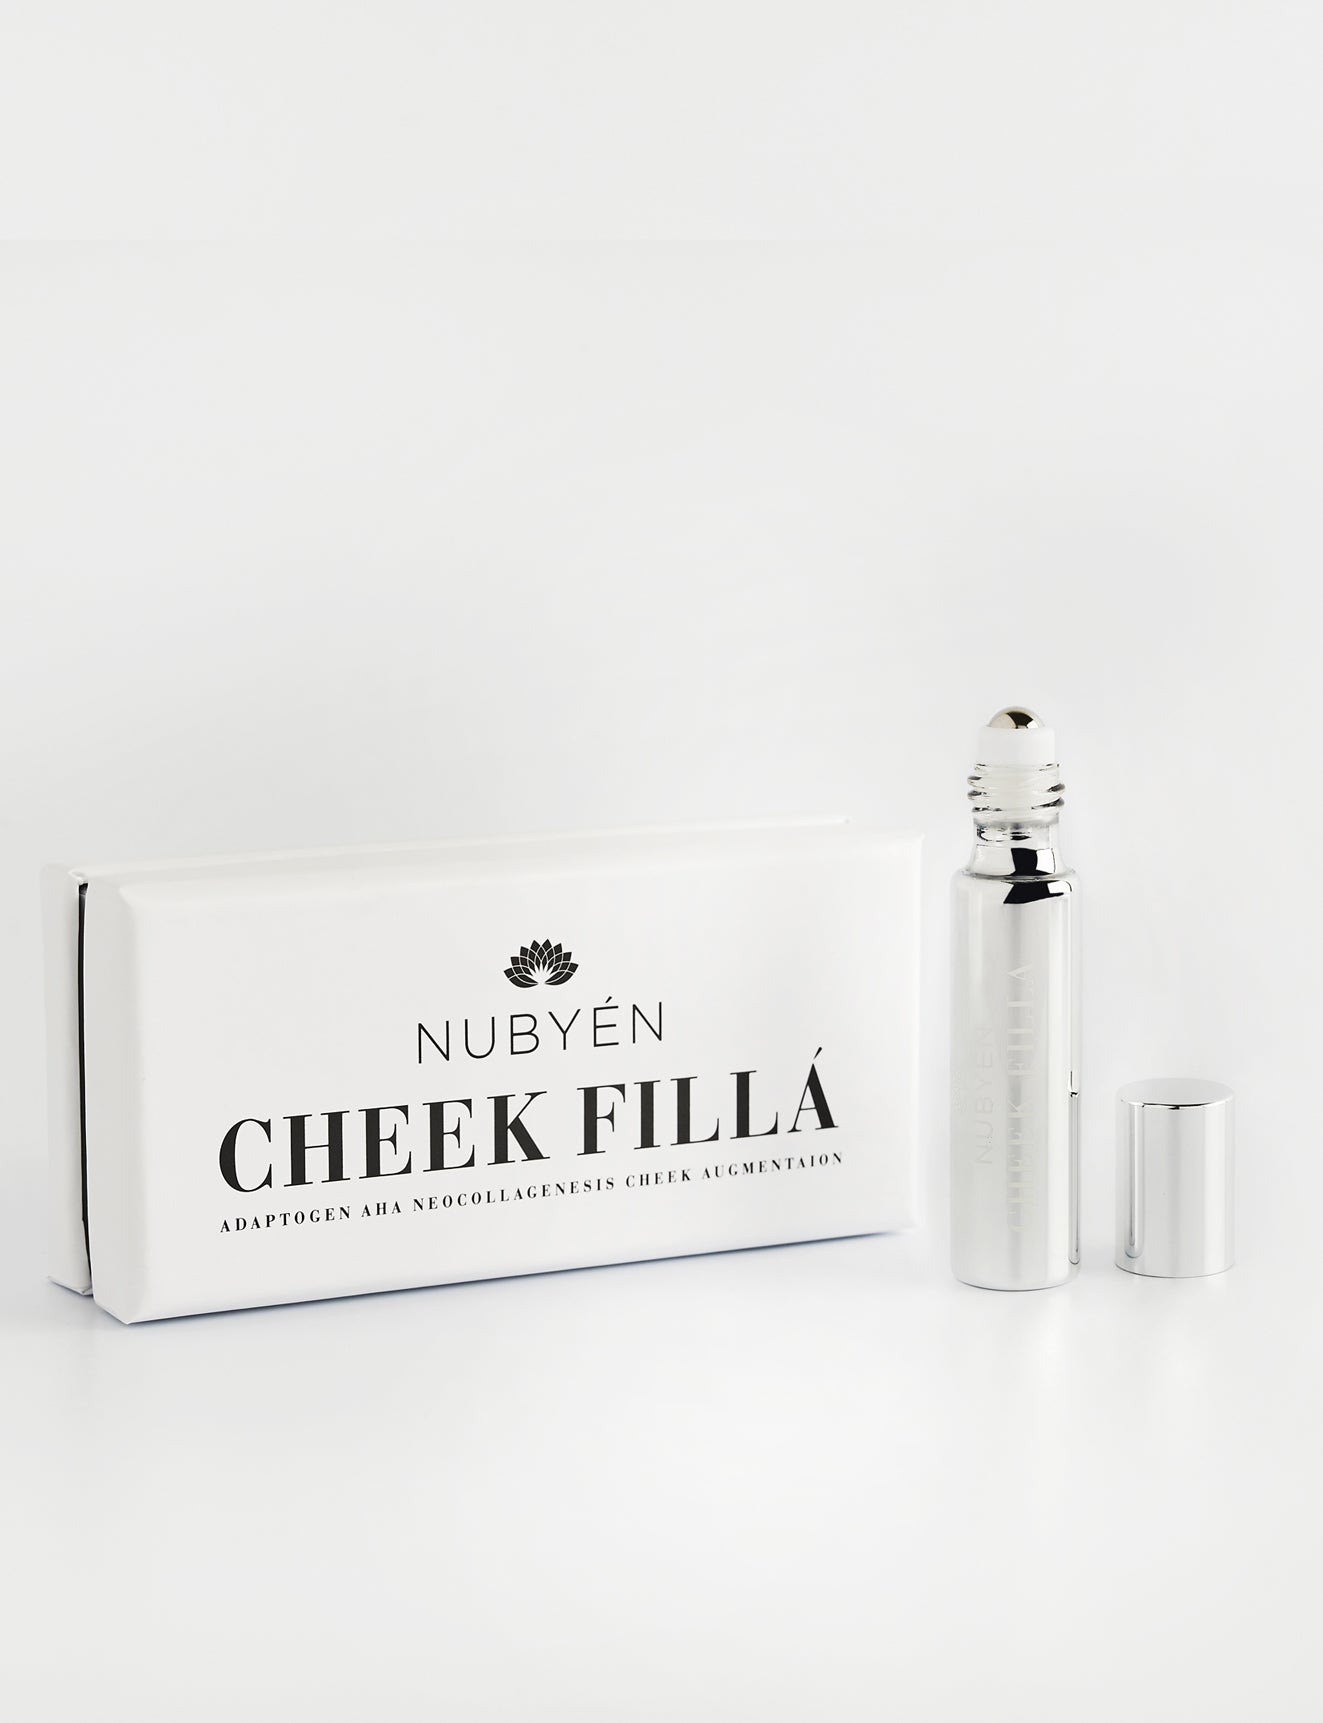 Nubyen cheek filler, hyaluronic acid, collagen, Lip plumping gloss Nubyen Nude, best lip plumper, nubyen cheek filler , cheek filler alternative, nubyen lip plumper, lip plumping gloss, best lip plumper, Nubyen Nude, fuller lips instantly, collagen hyaluronic acid, best lip plumping lipgloss, best lip plumper, lip filler, full lips, lip injections, plump it, Charlotte tilbury collagen lip plumper, too faced lip injection, dior addict lip maximiser, code lip intense plumper, buxum lip plumper